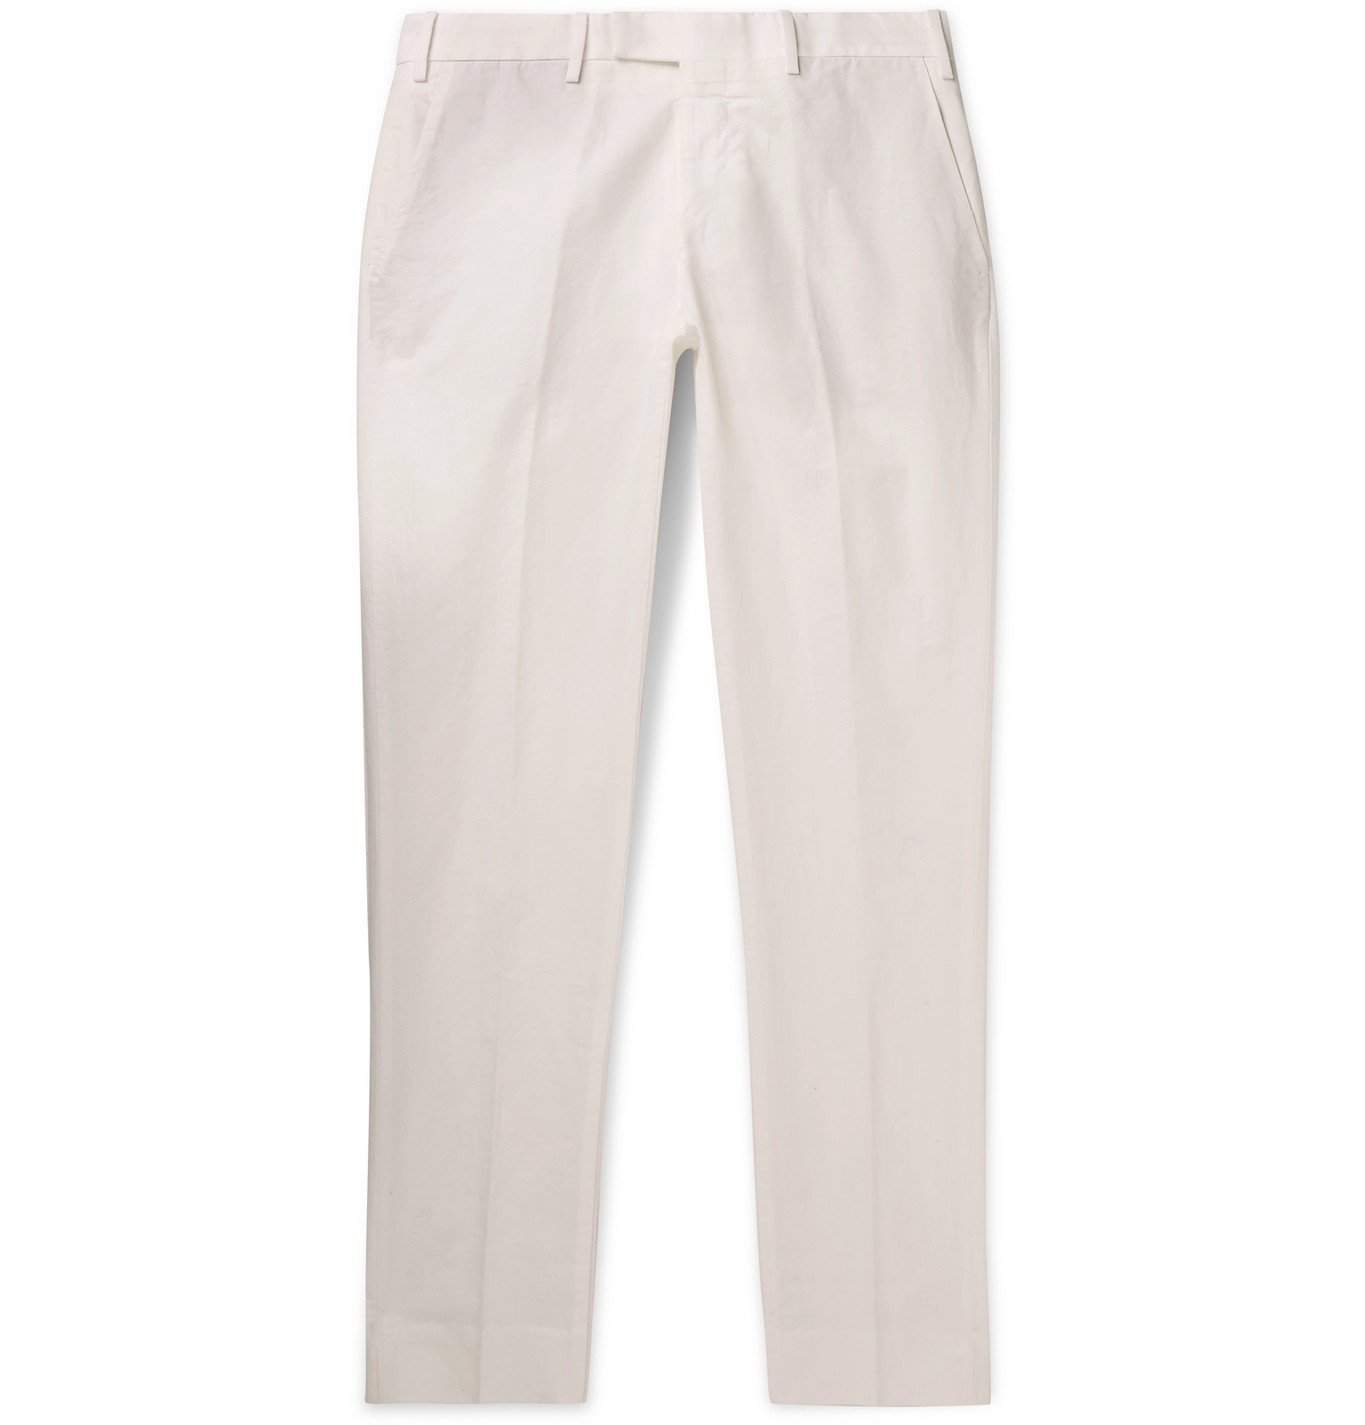 Photo: SALLE PRIVÉE - Gehry Slim-Fit Cotton and Linen-Blend Chinos - White